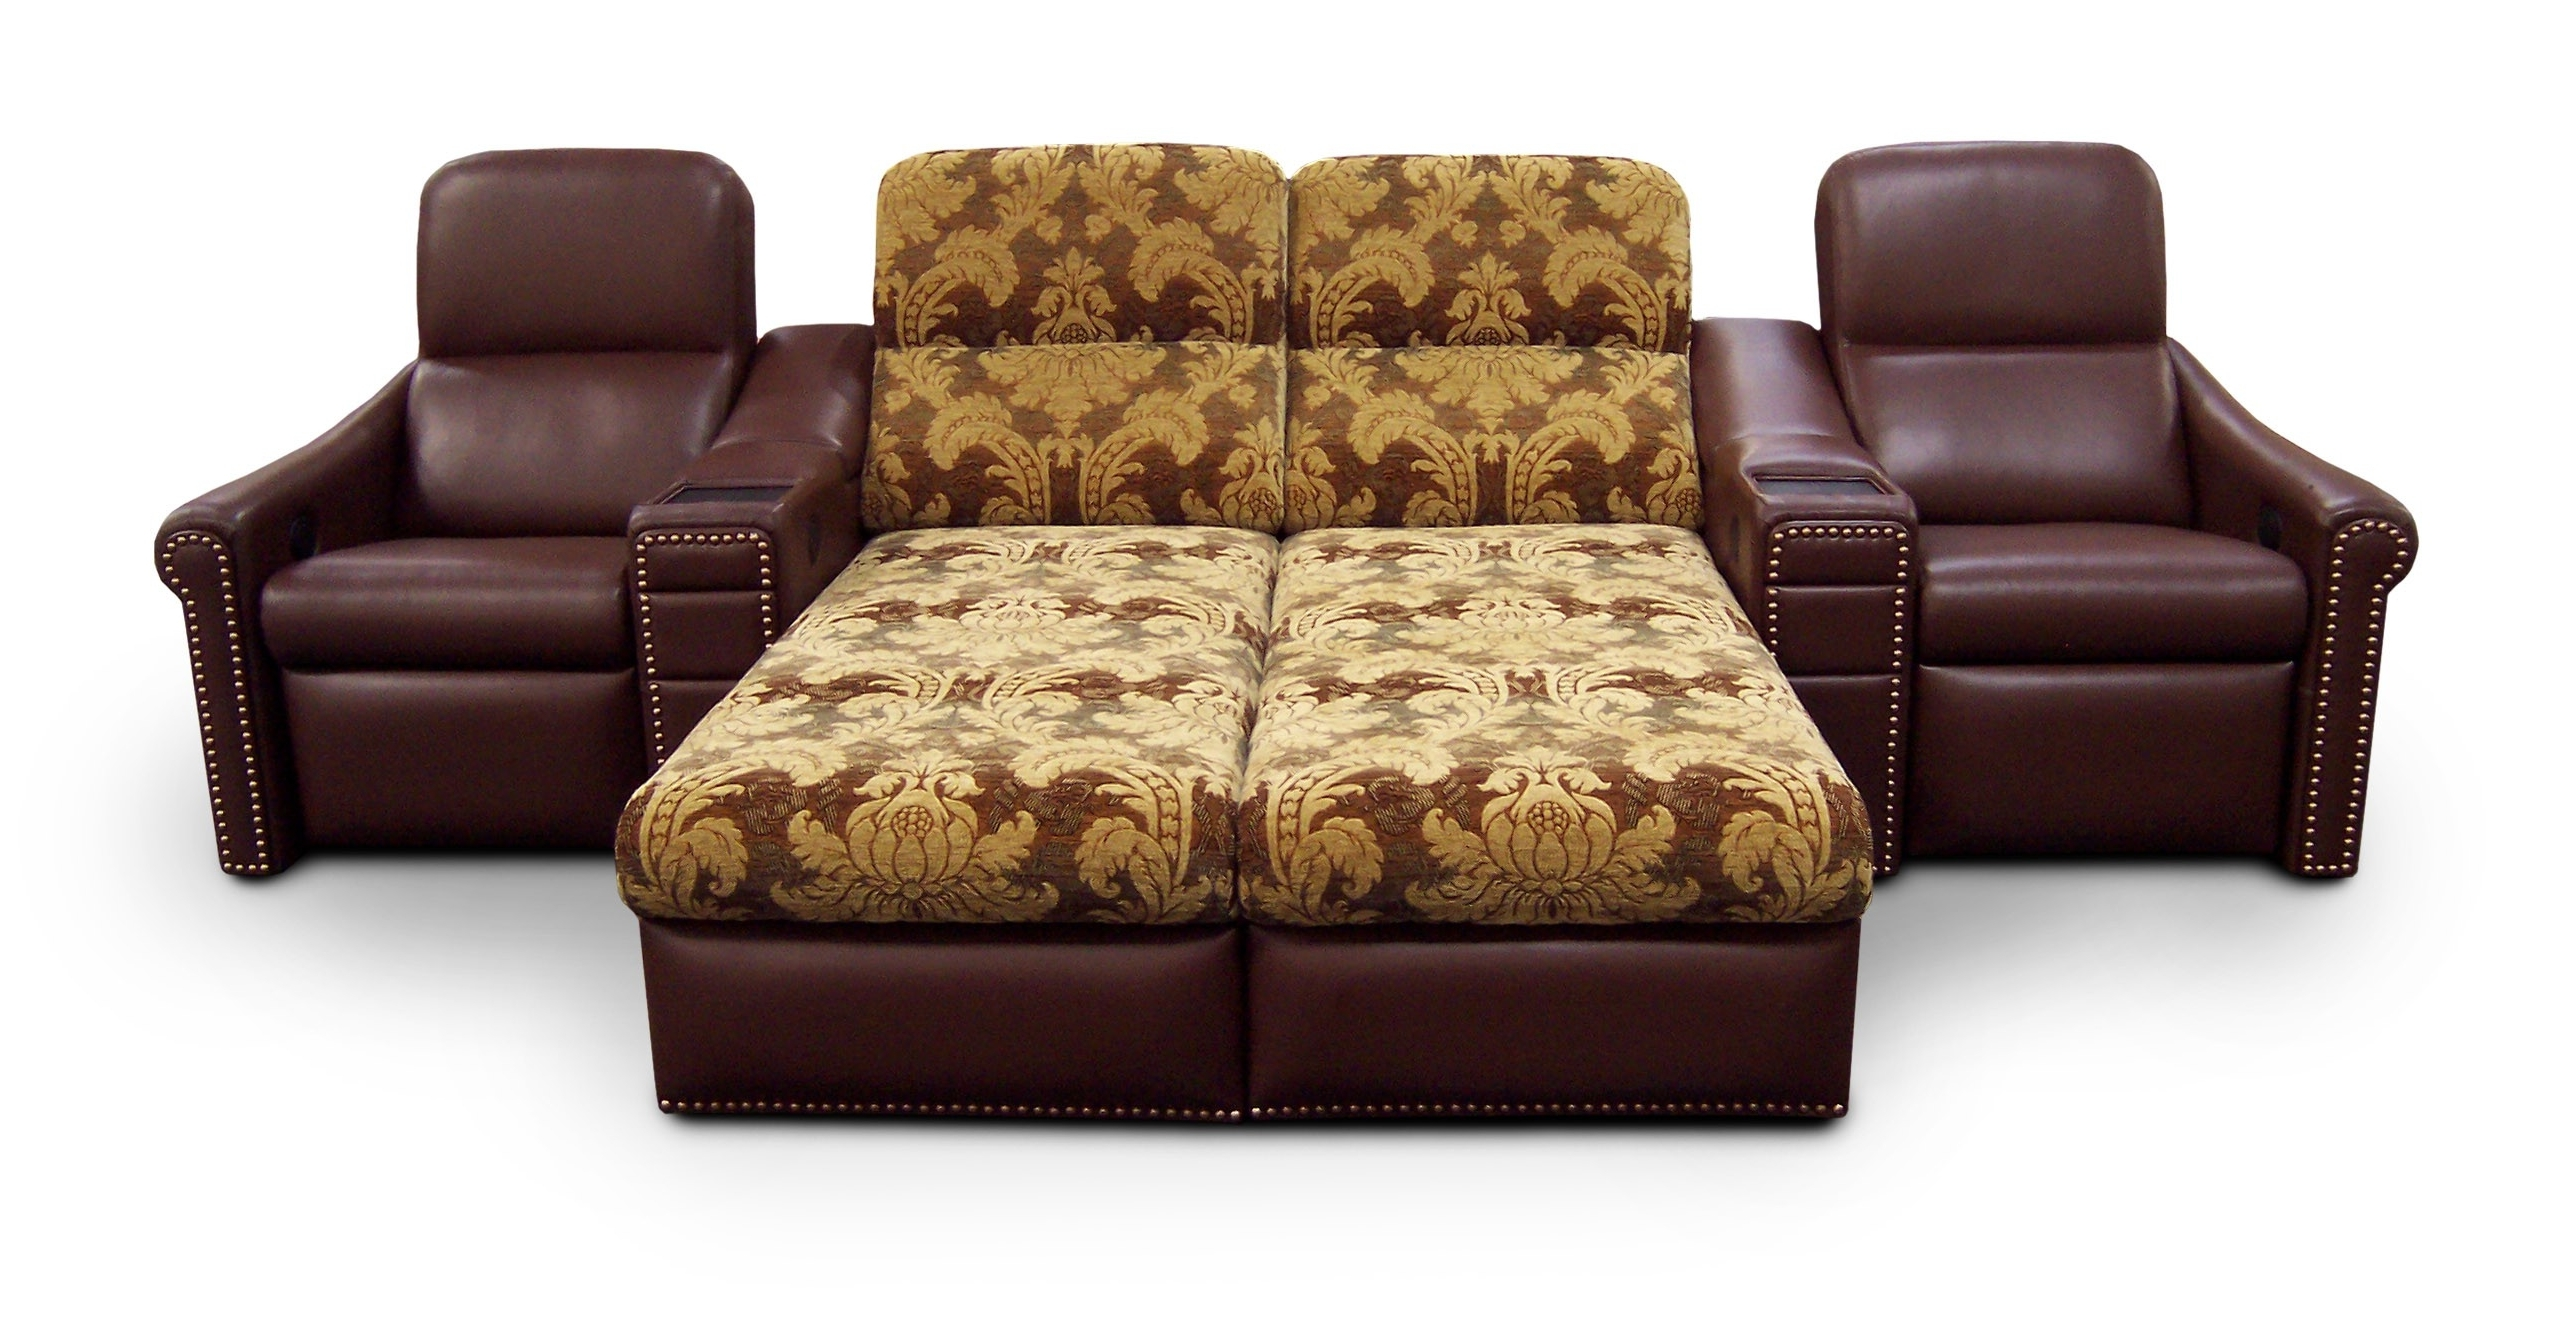 Most Popular Leather Chaise Lounge Sofa Beds With Regard To Convertible Chair : Brown Leather Chaise Lounge Chaise Chairs For (View 3 of 15)